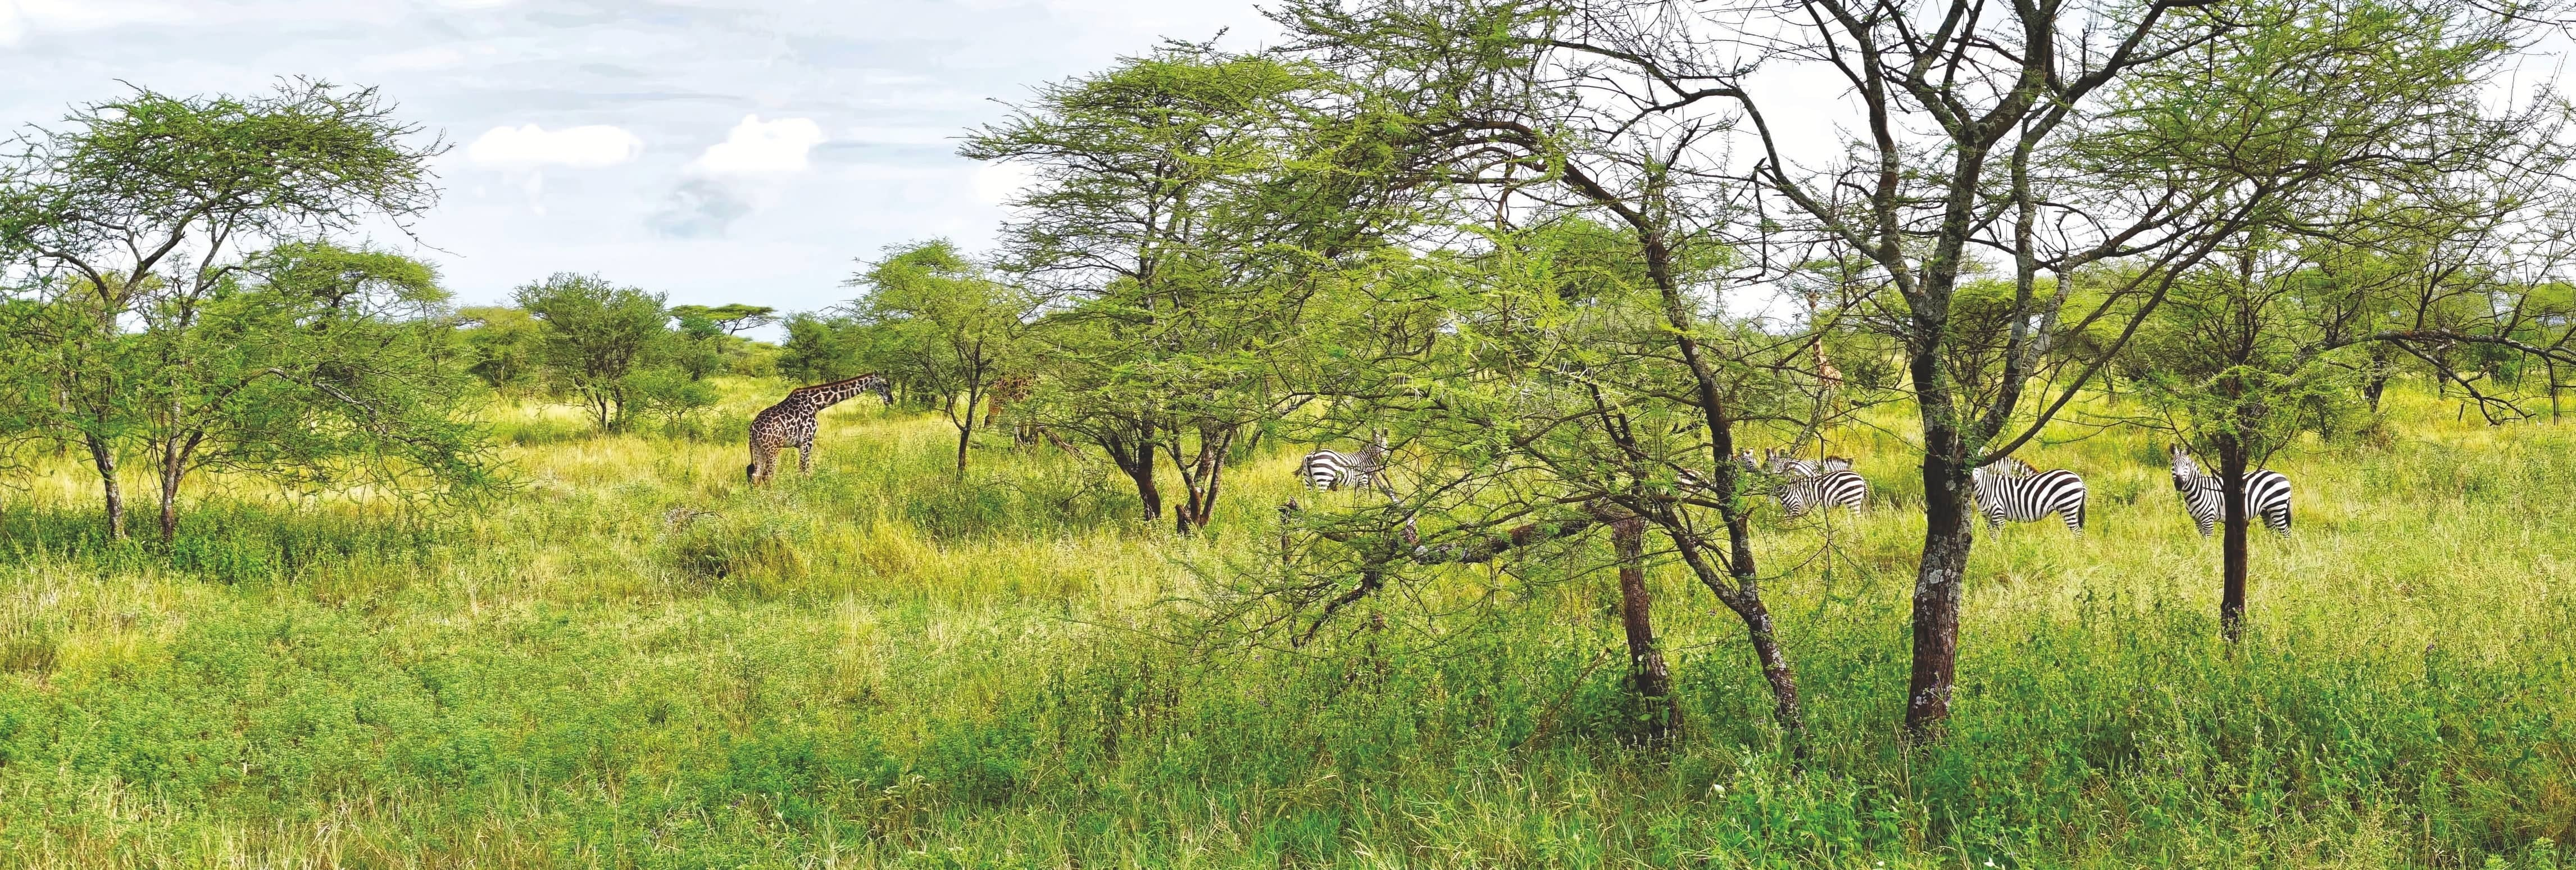 Green Dreams In Tanzania